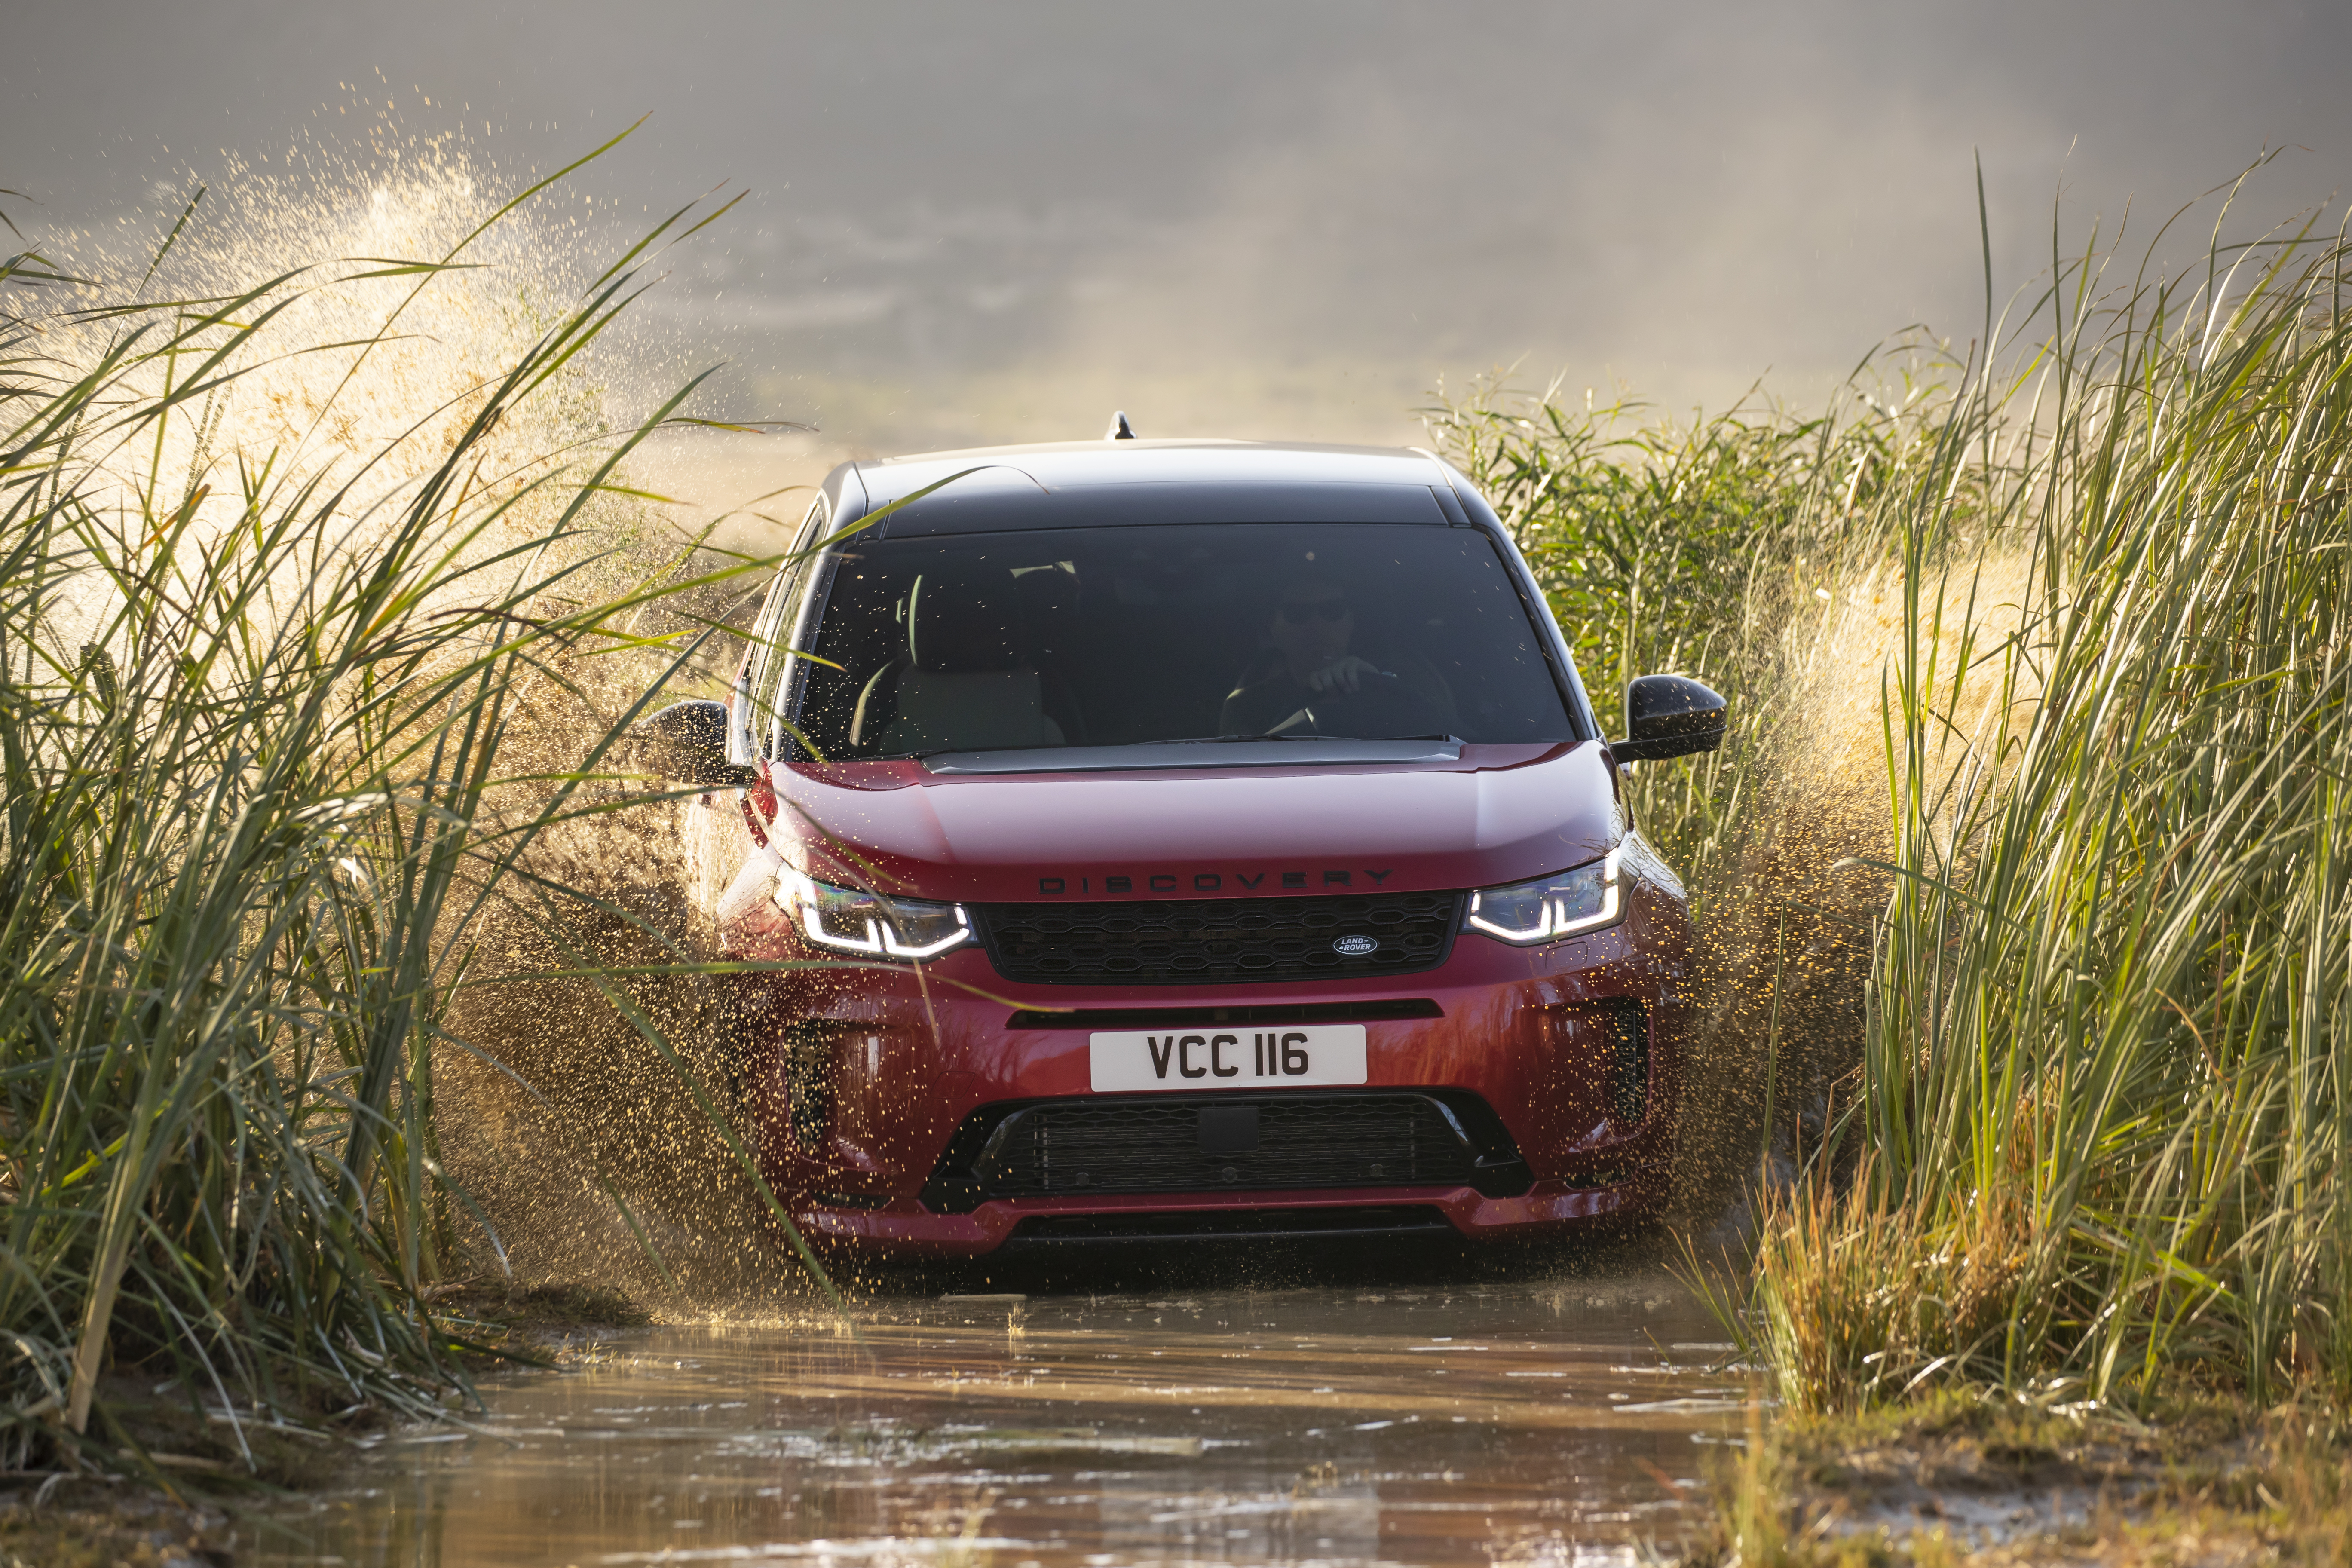 2020-land-rover-discovery-sport-4.jpg